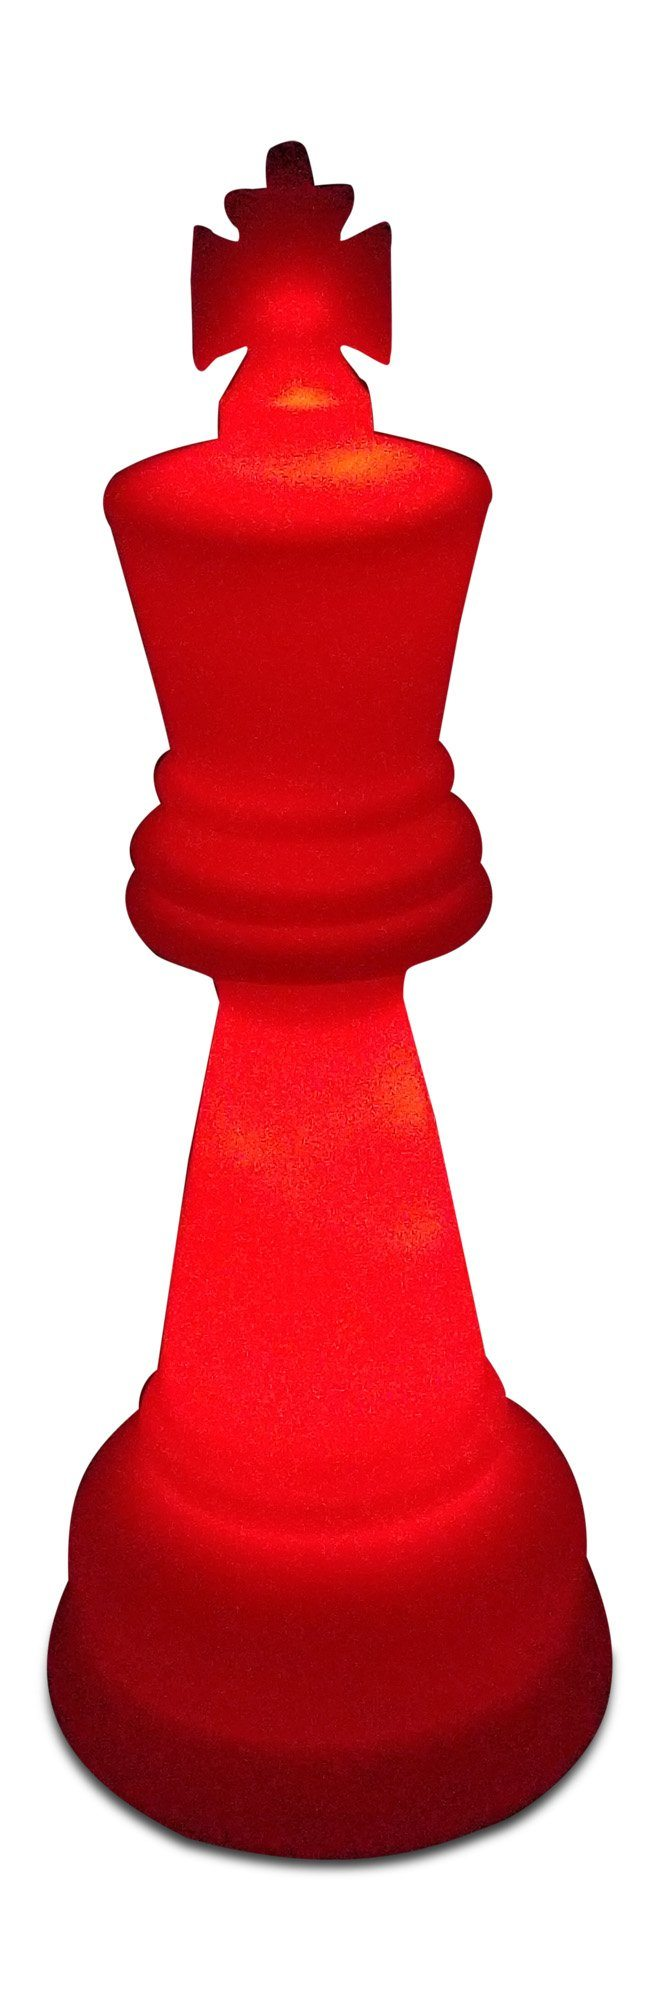 MegaChess 48 Inch Perfect King Light-Up Giant Chess Piece - Red |  | MegaChess.com